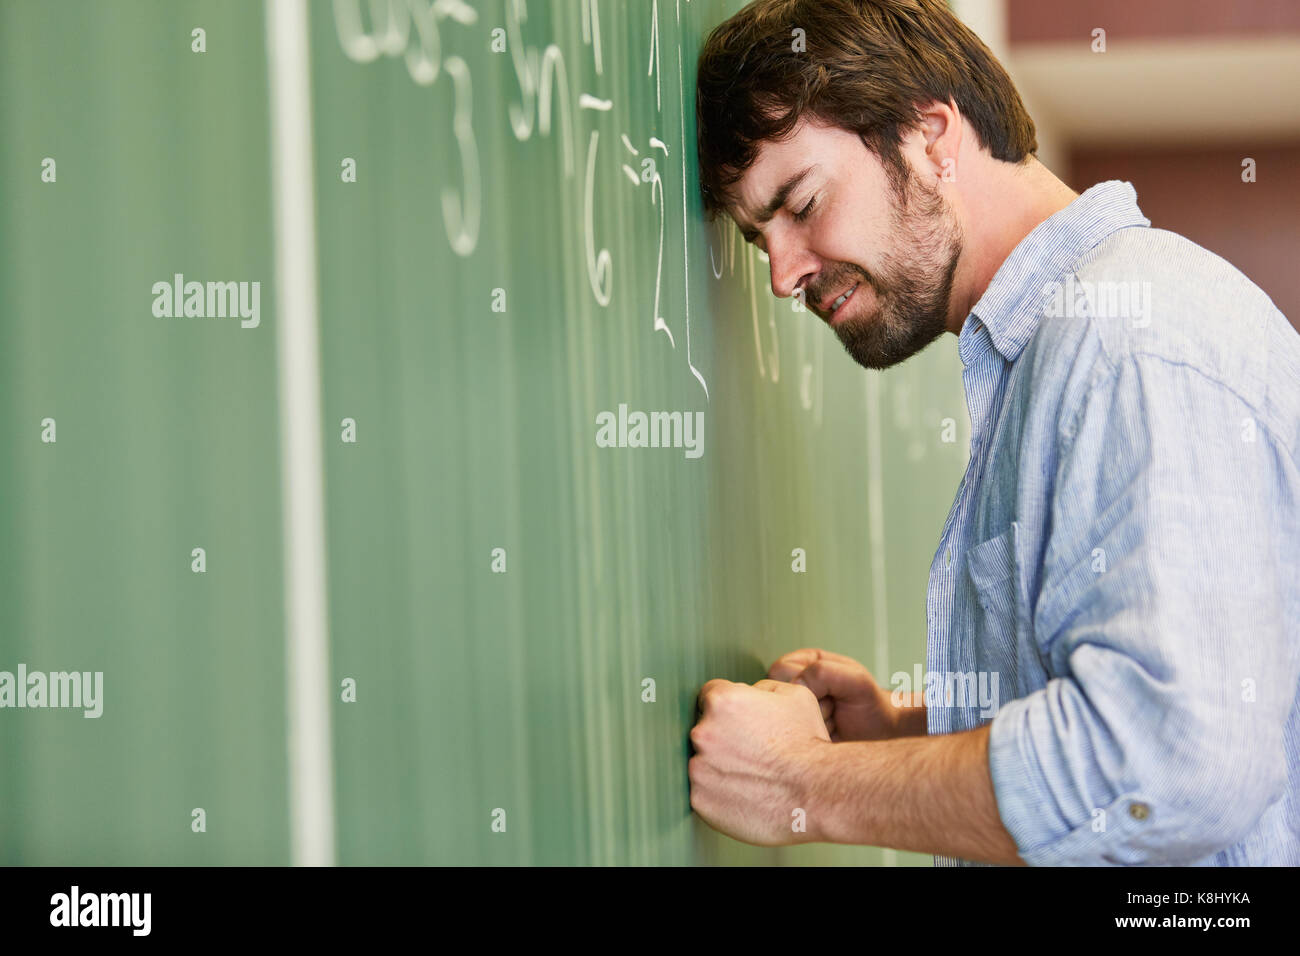 Student calculating math problem on chalkboarf with frustration ...